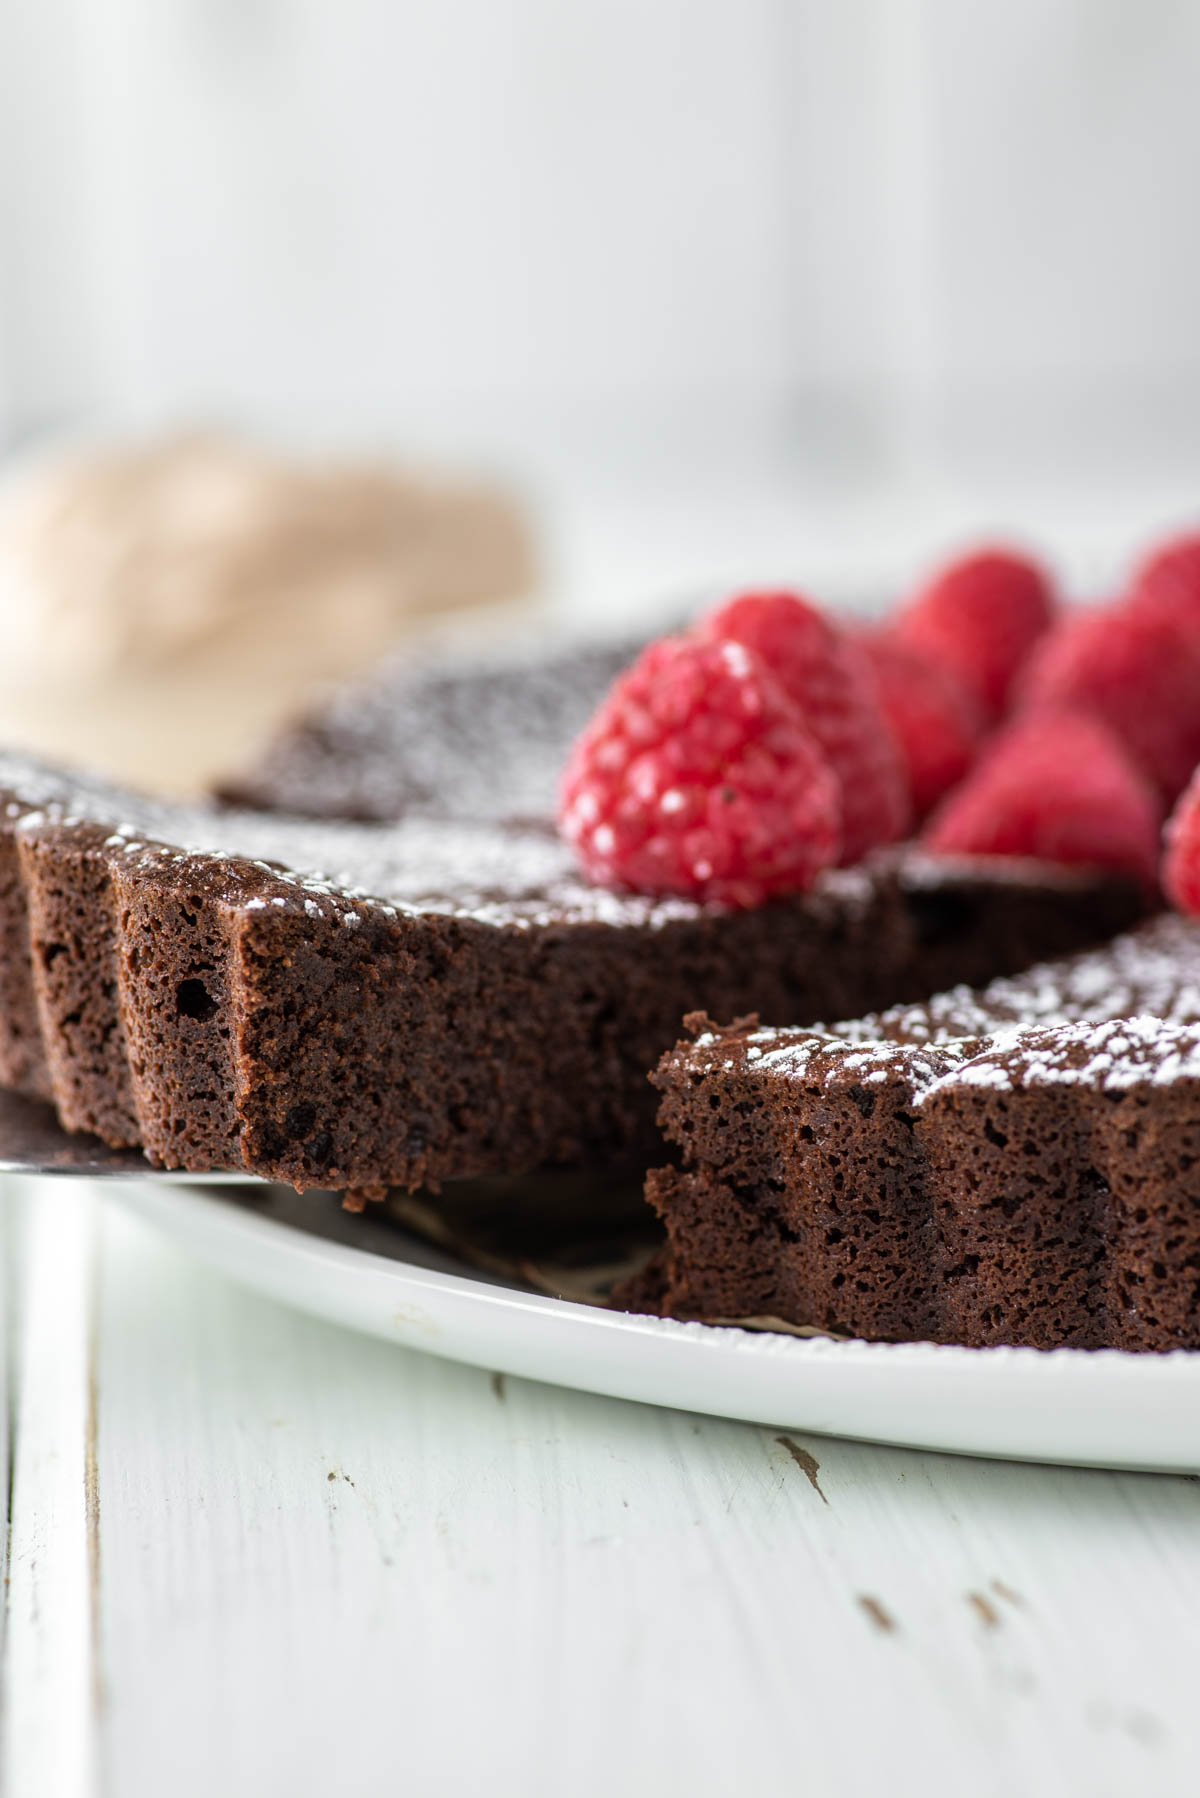 slice of flourless chocolate cake with being pulled away from white plate